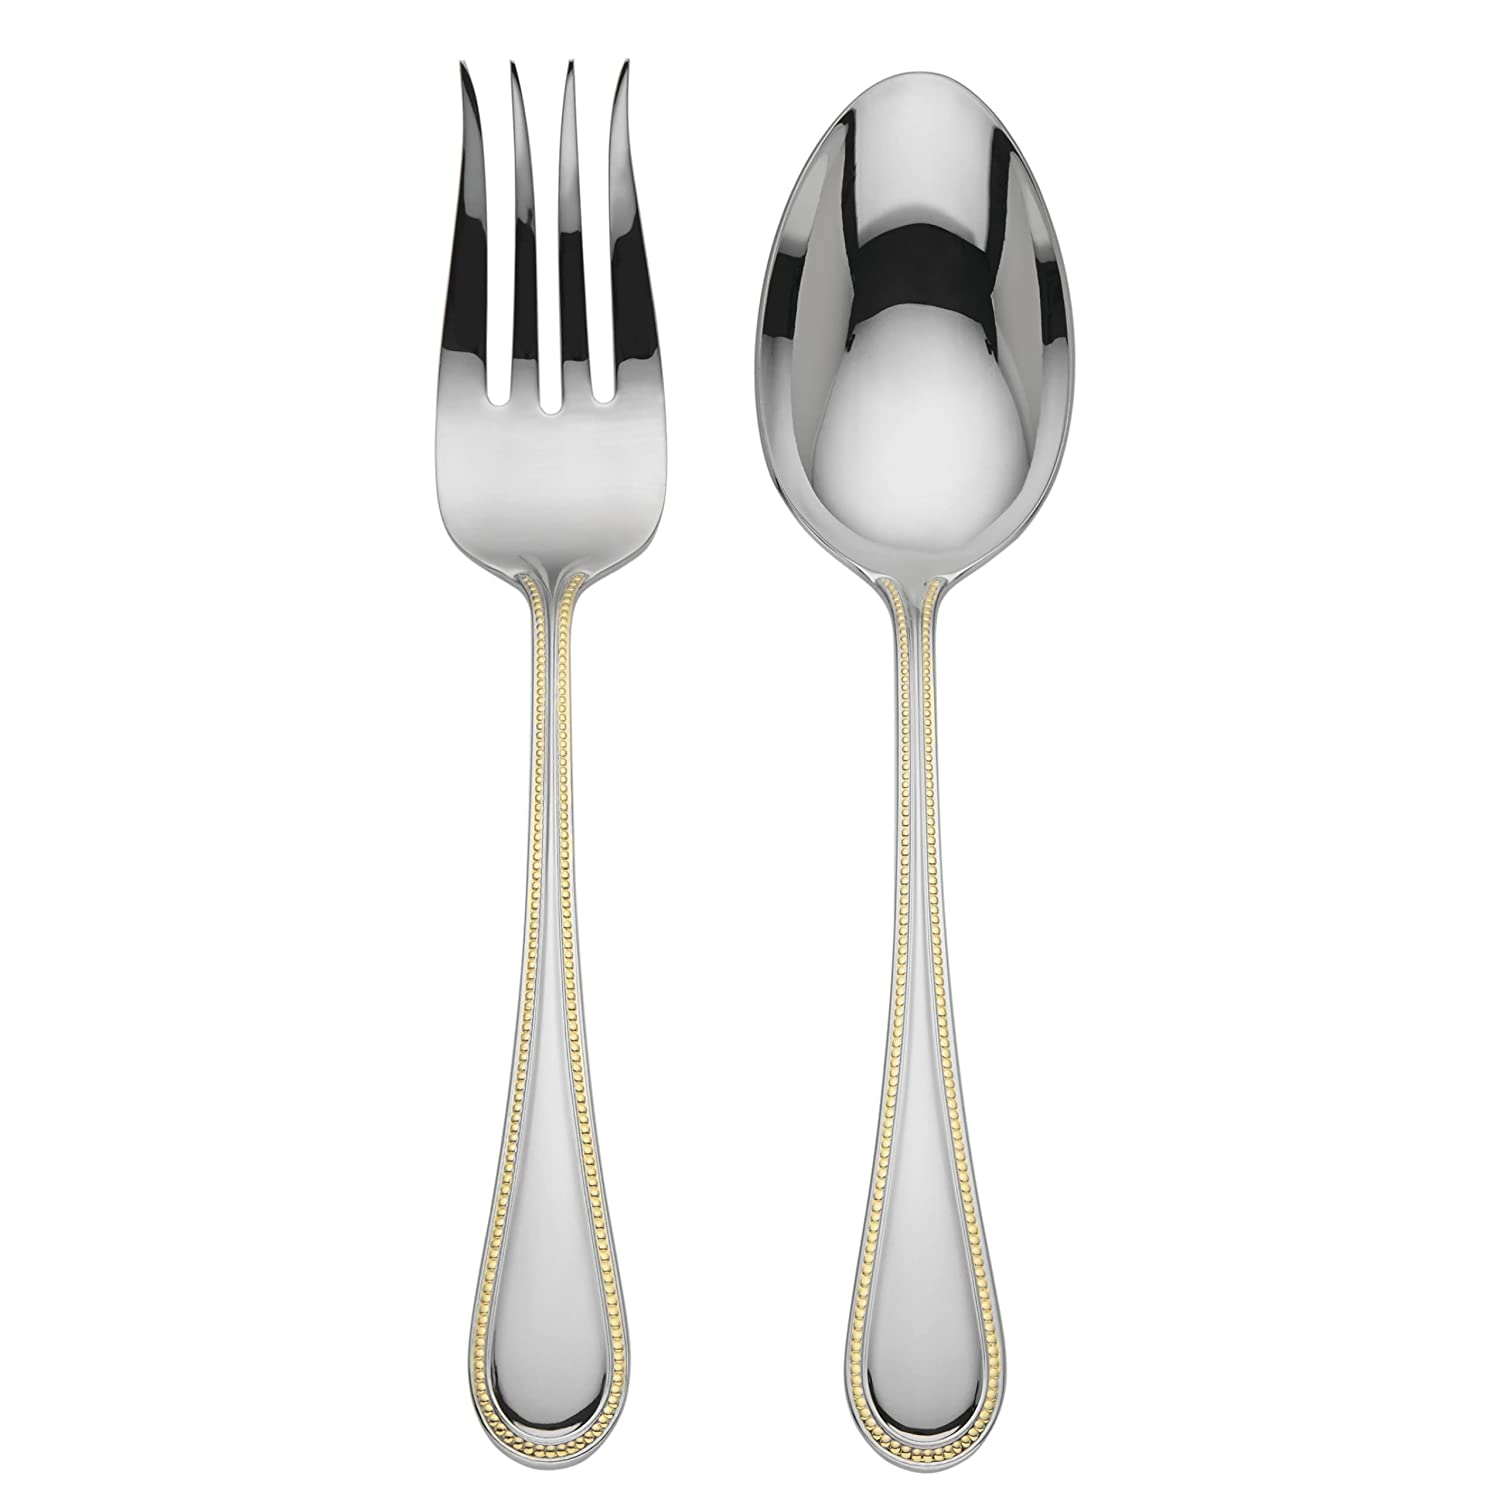 Reed & Barton Lyndon Gold 2 Piece Salad/Serving Set, Silver 869669